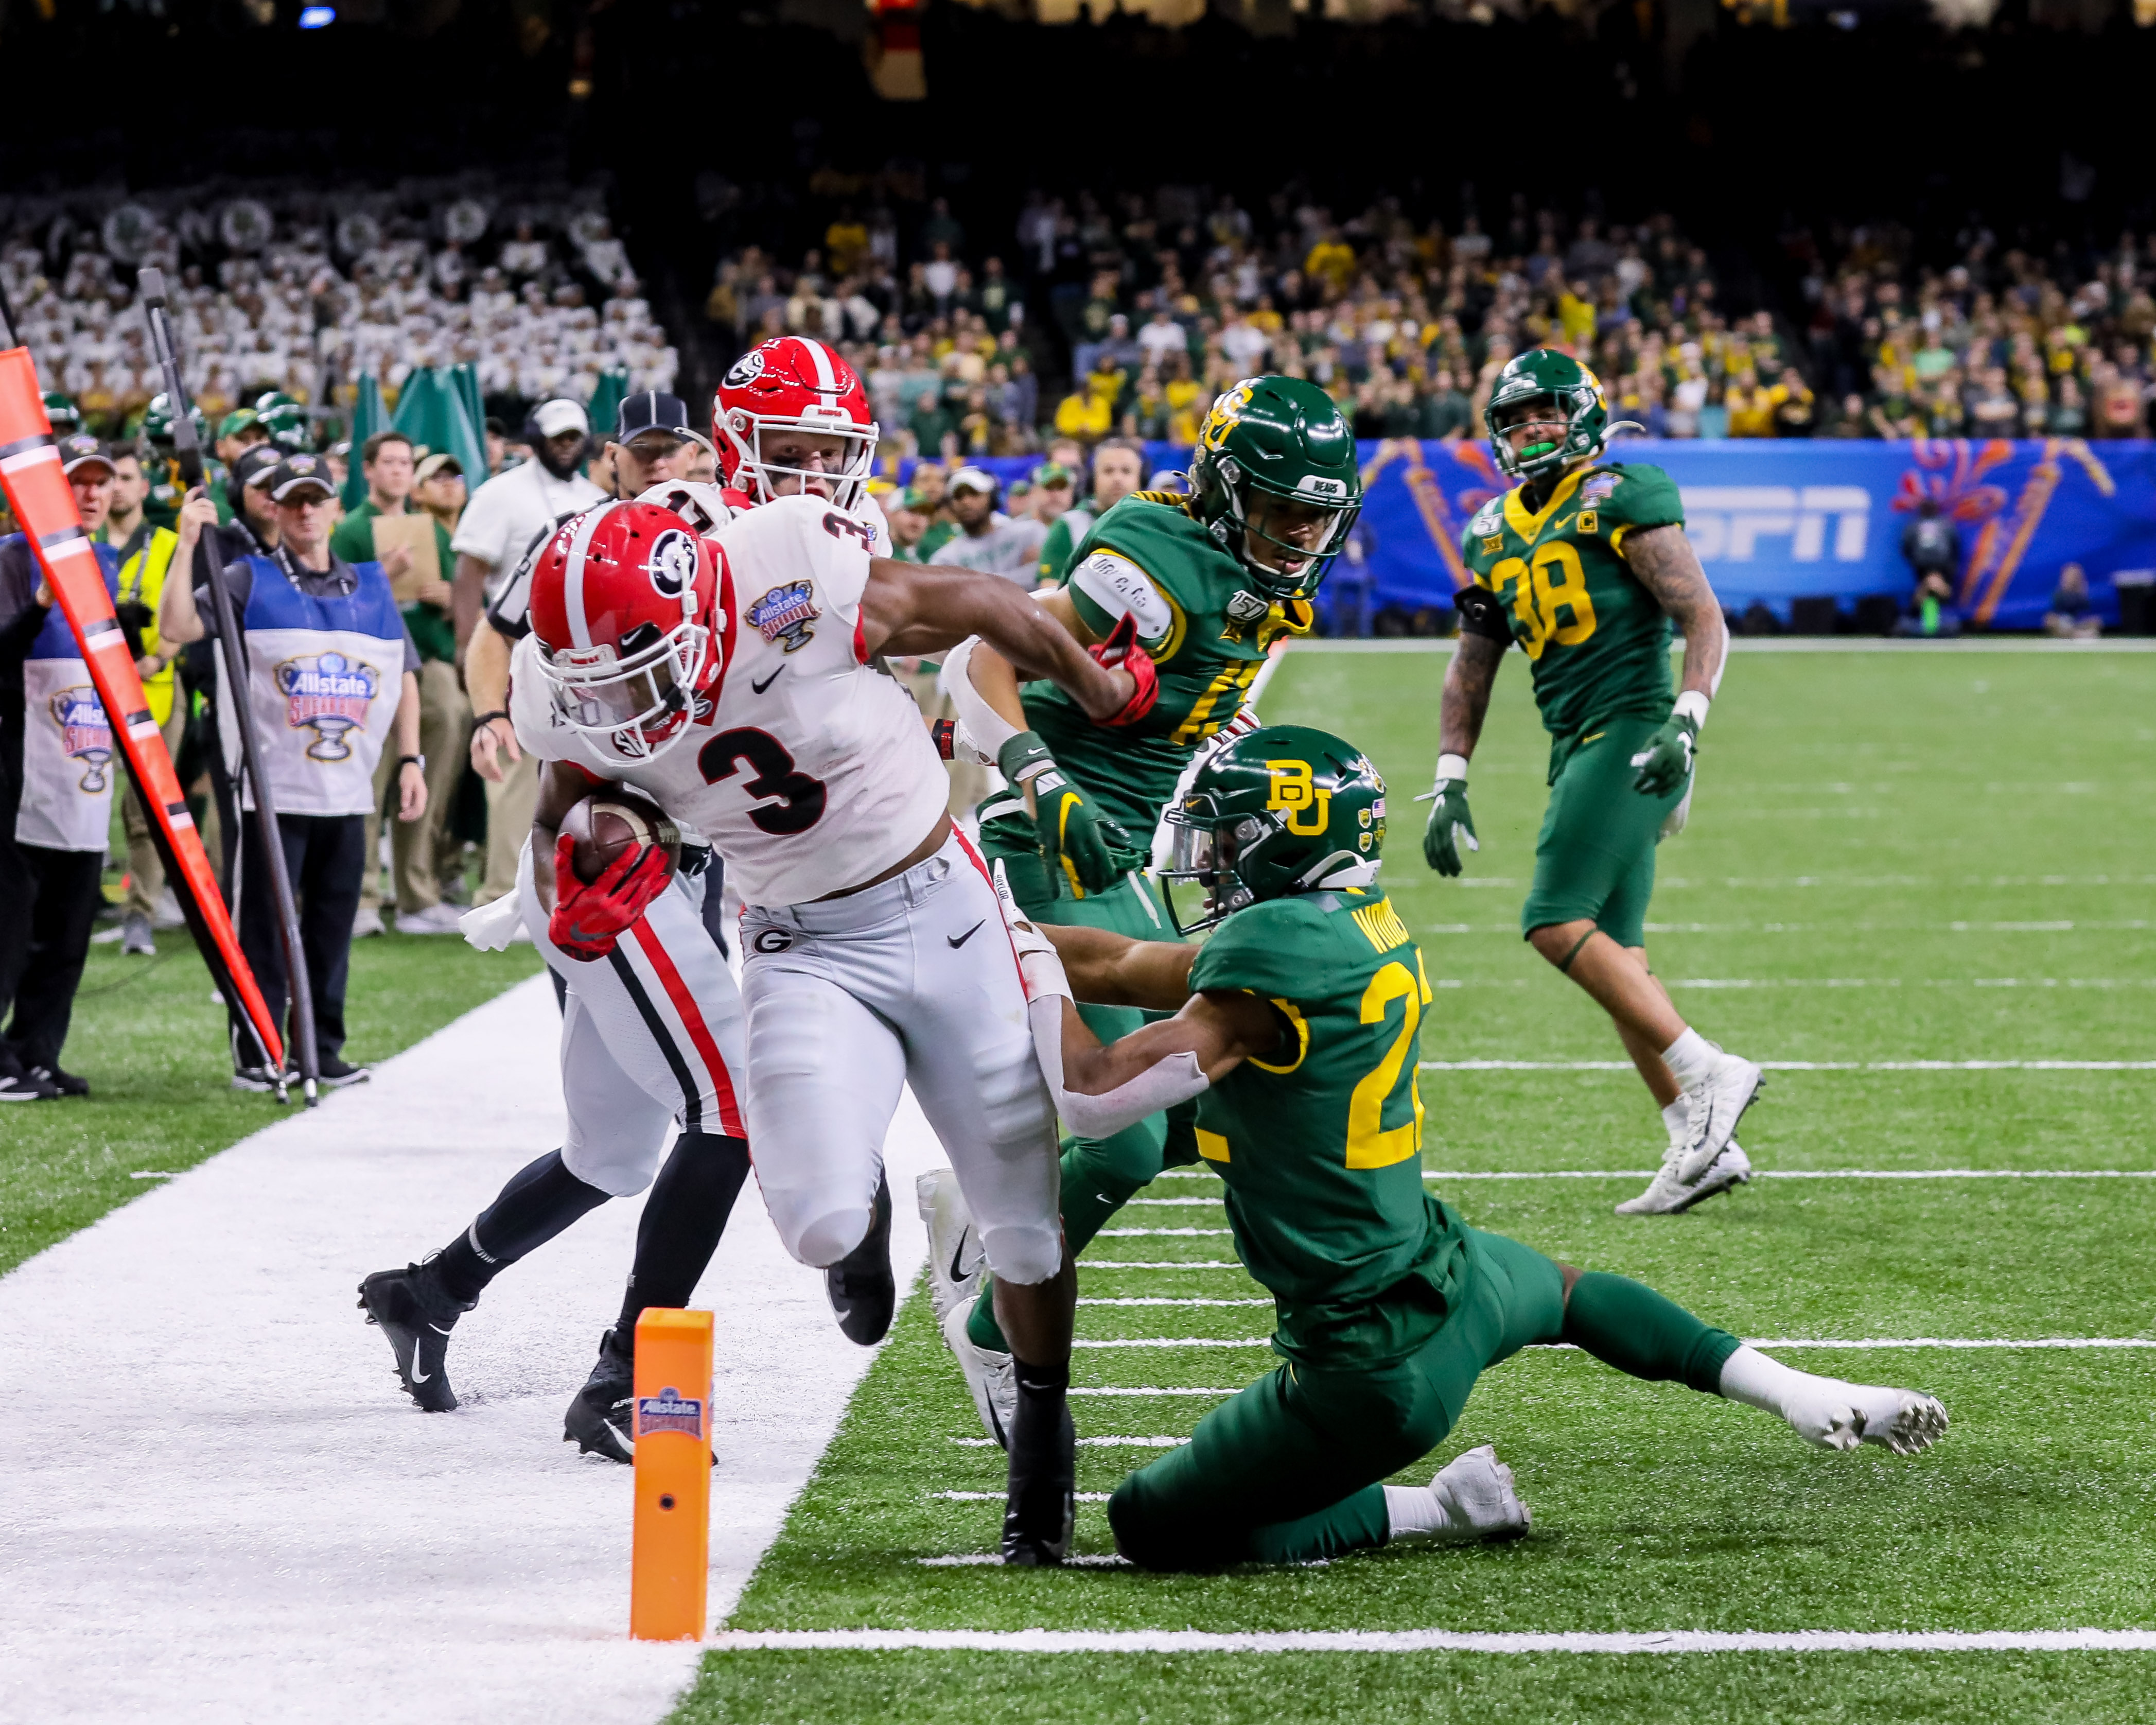 NCAA Football: Sugar Bowl-Georgia vs Baylor